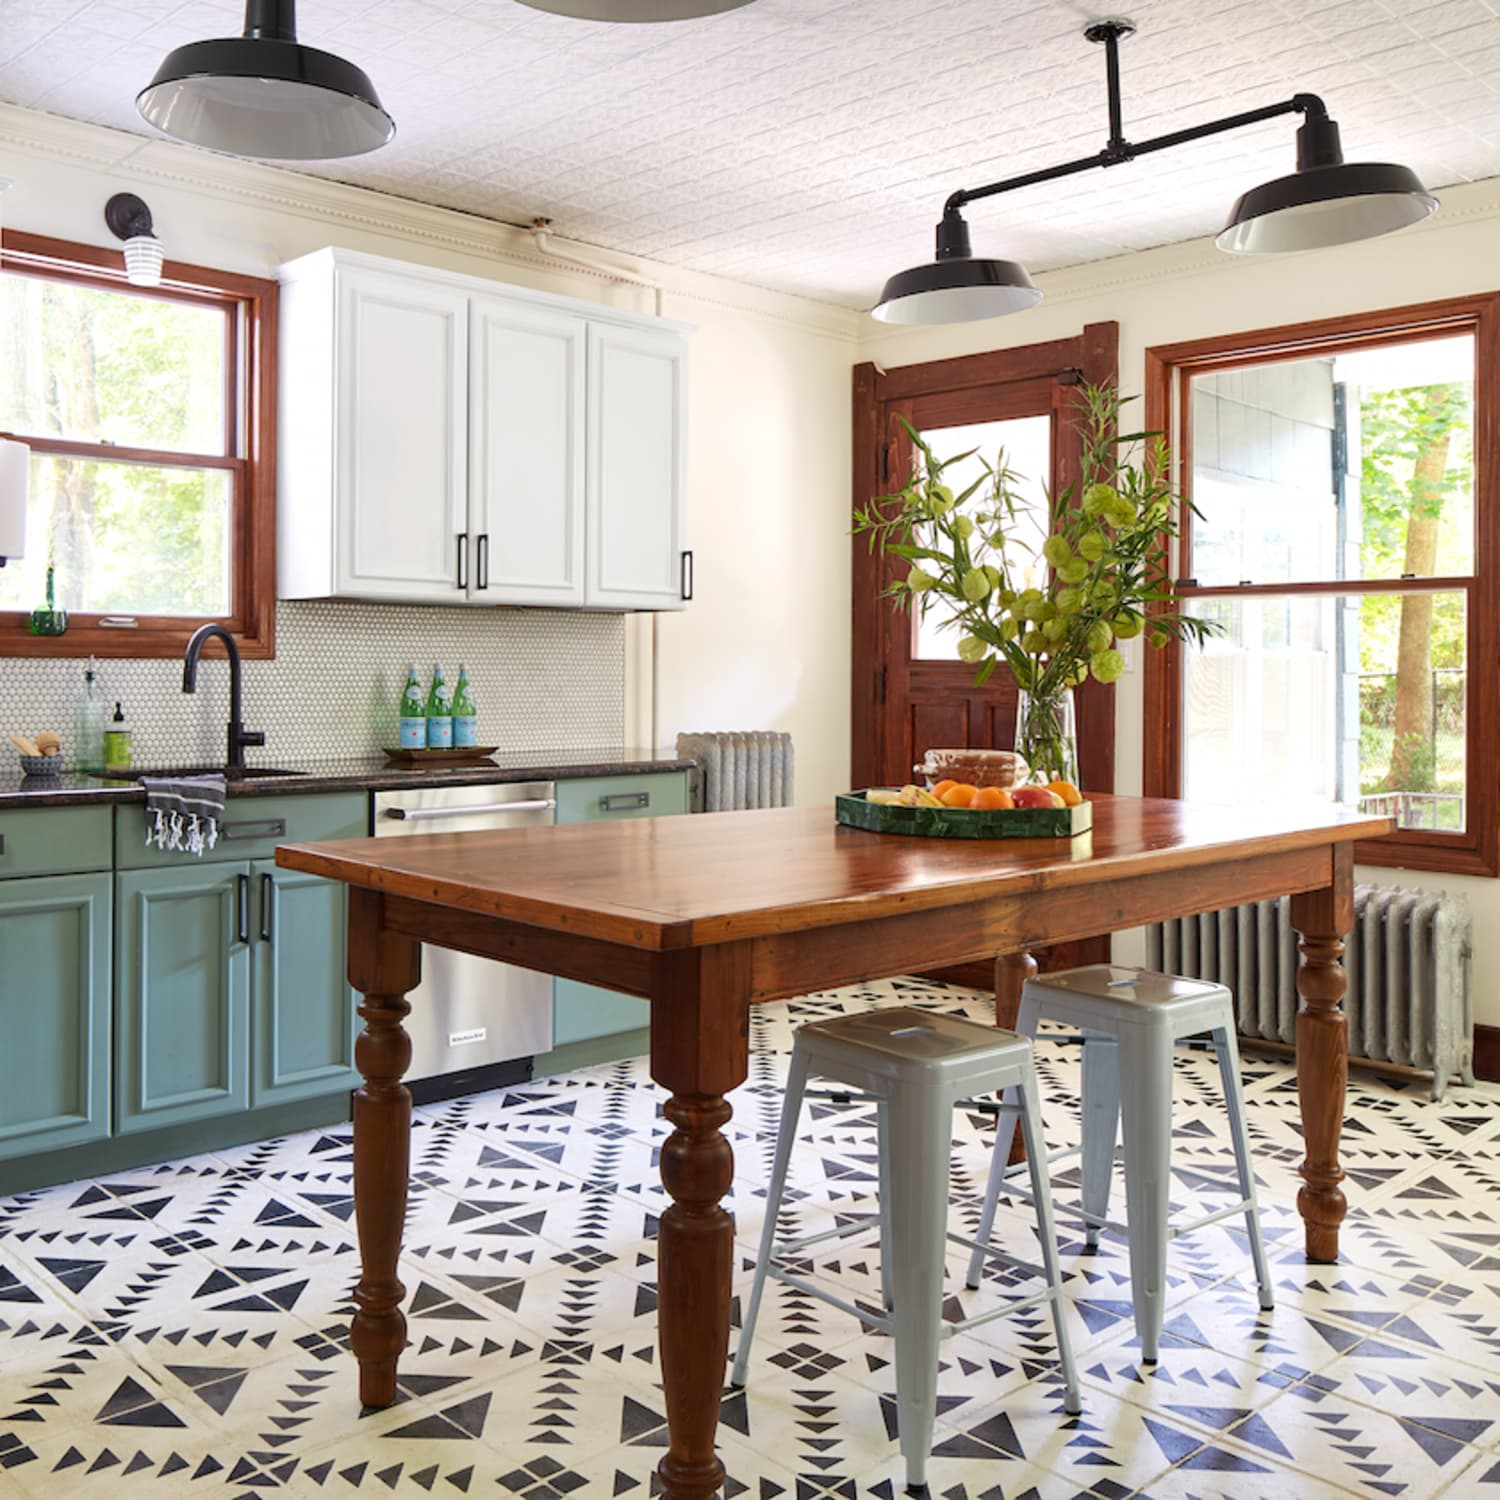 Yes, You Can Paint Your Entire Kitchen with Chalk Paint | Kitchn